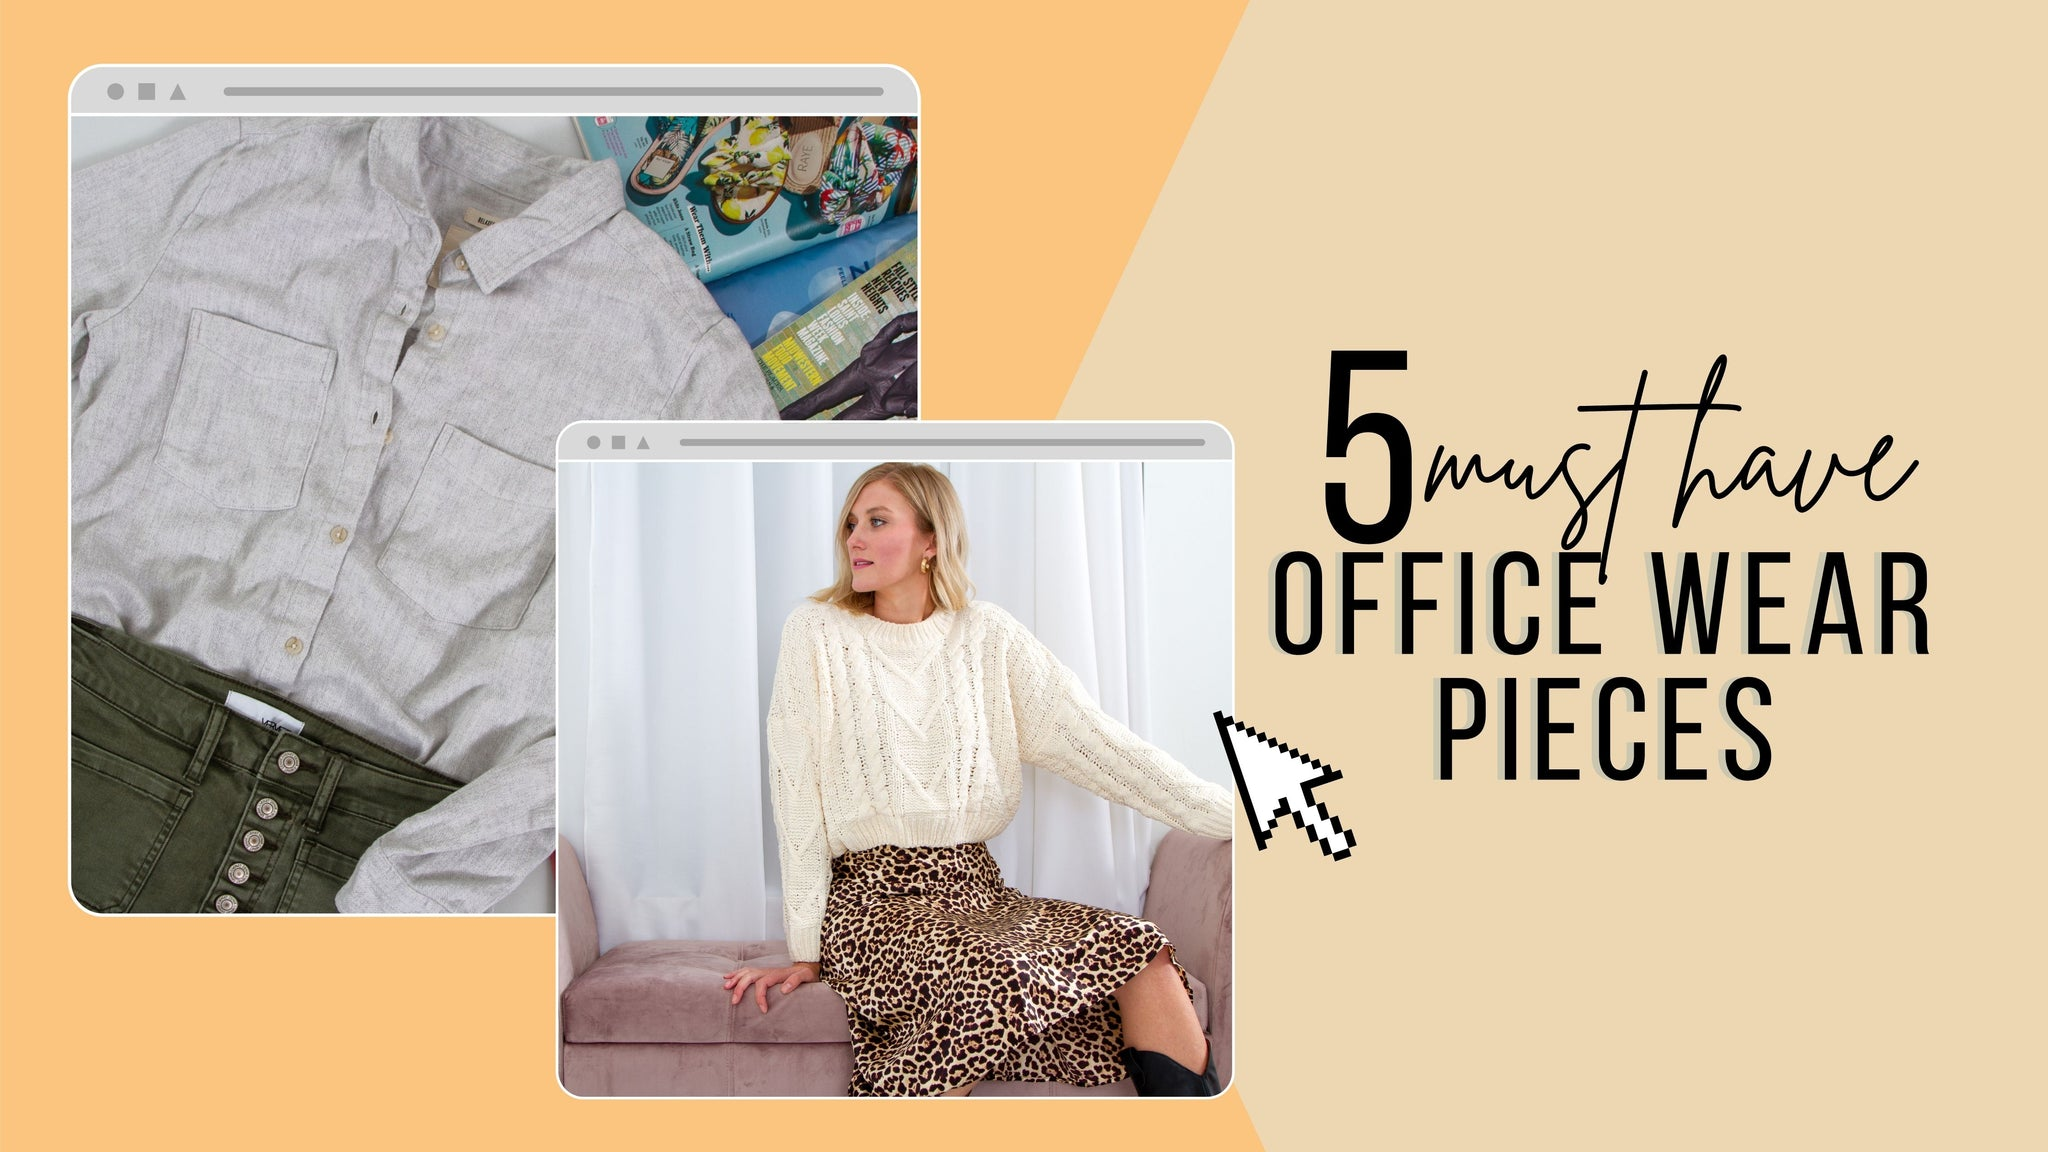 5 Must Have Office Wear Pieces